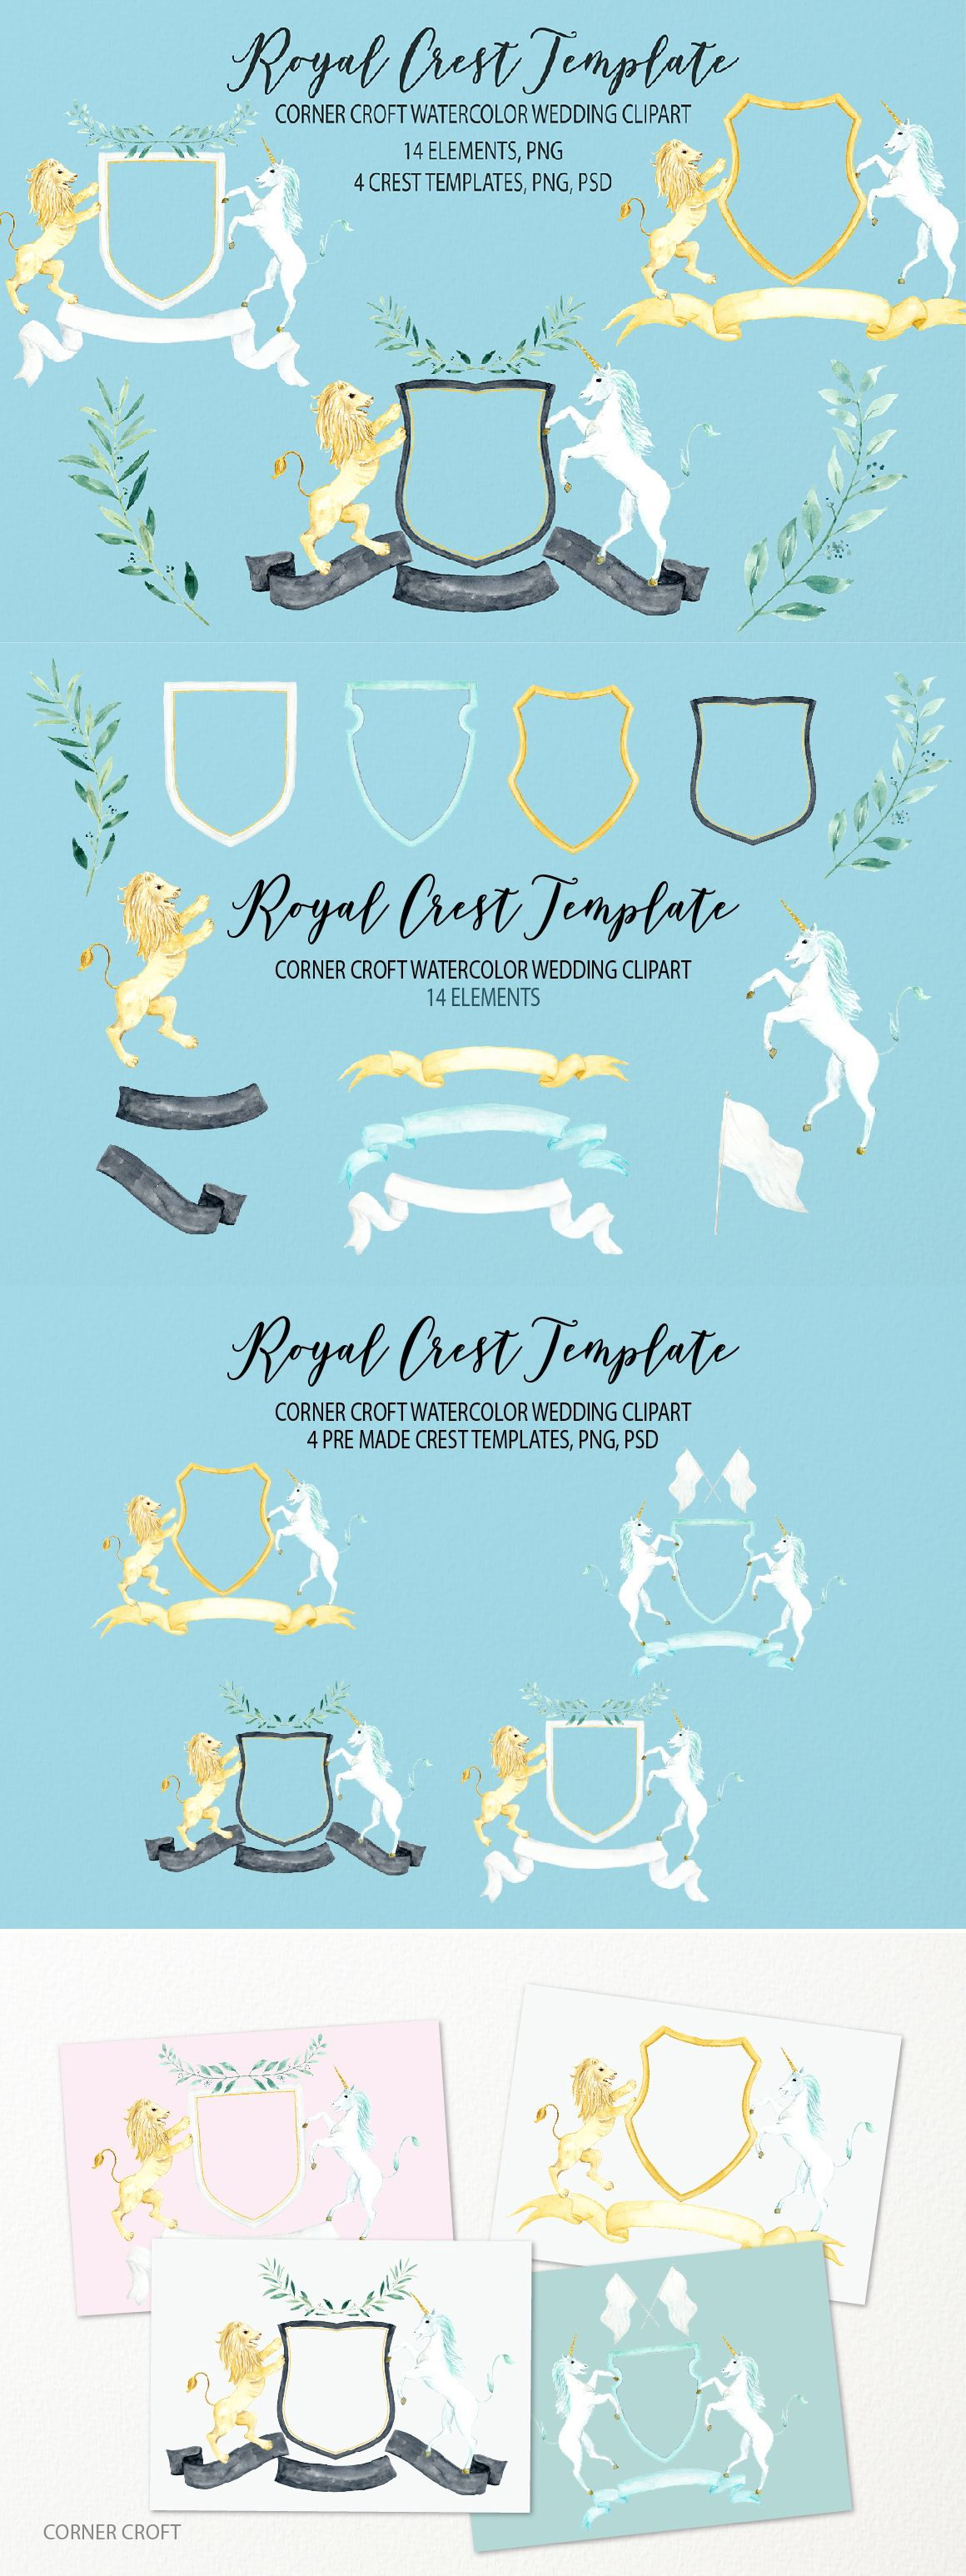 watercolor royal crest clipart wedding crest template for instant